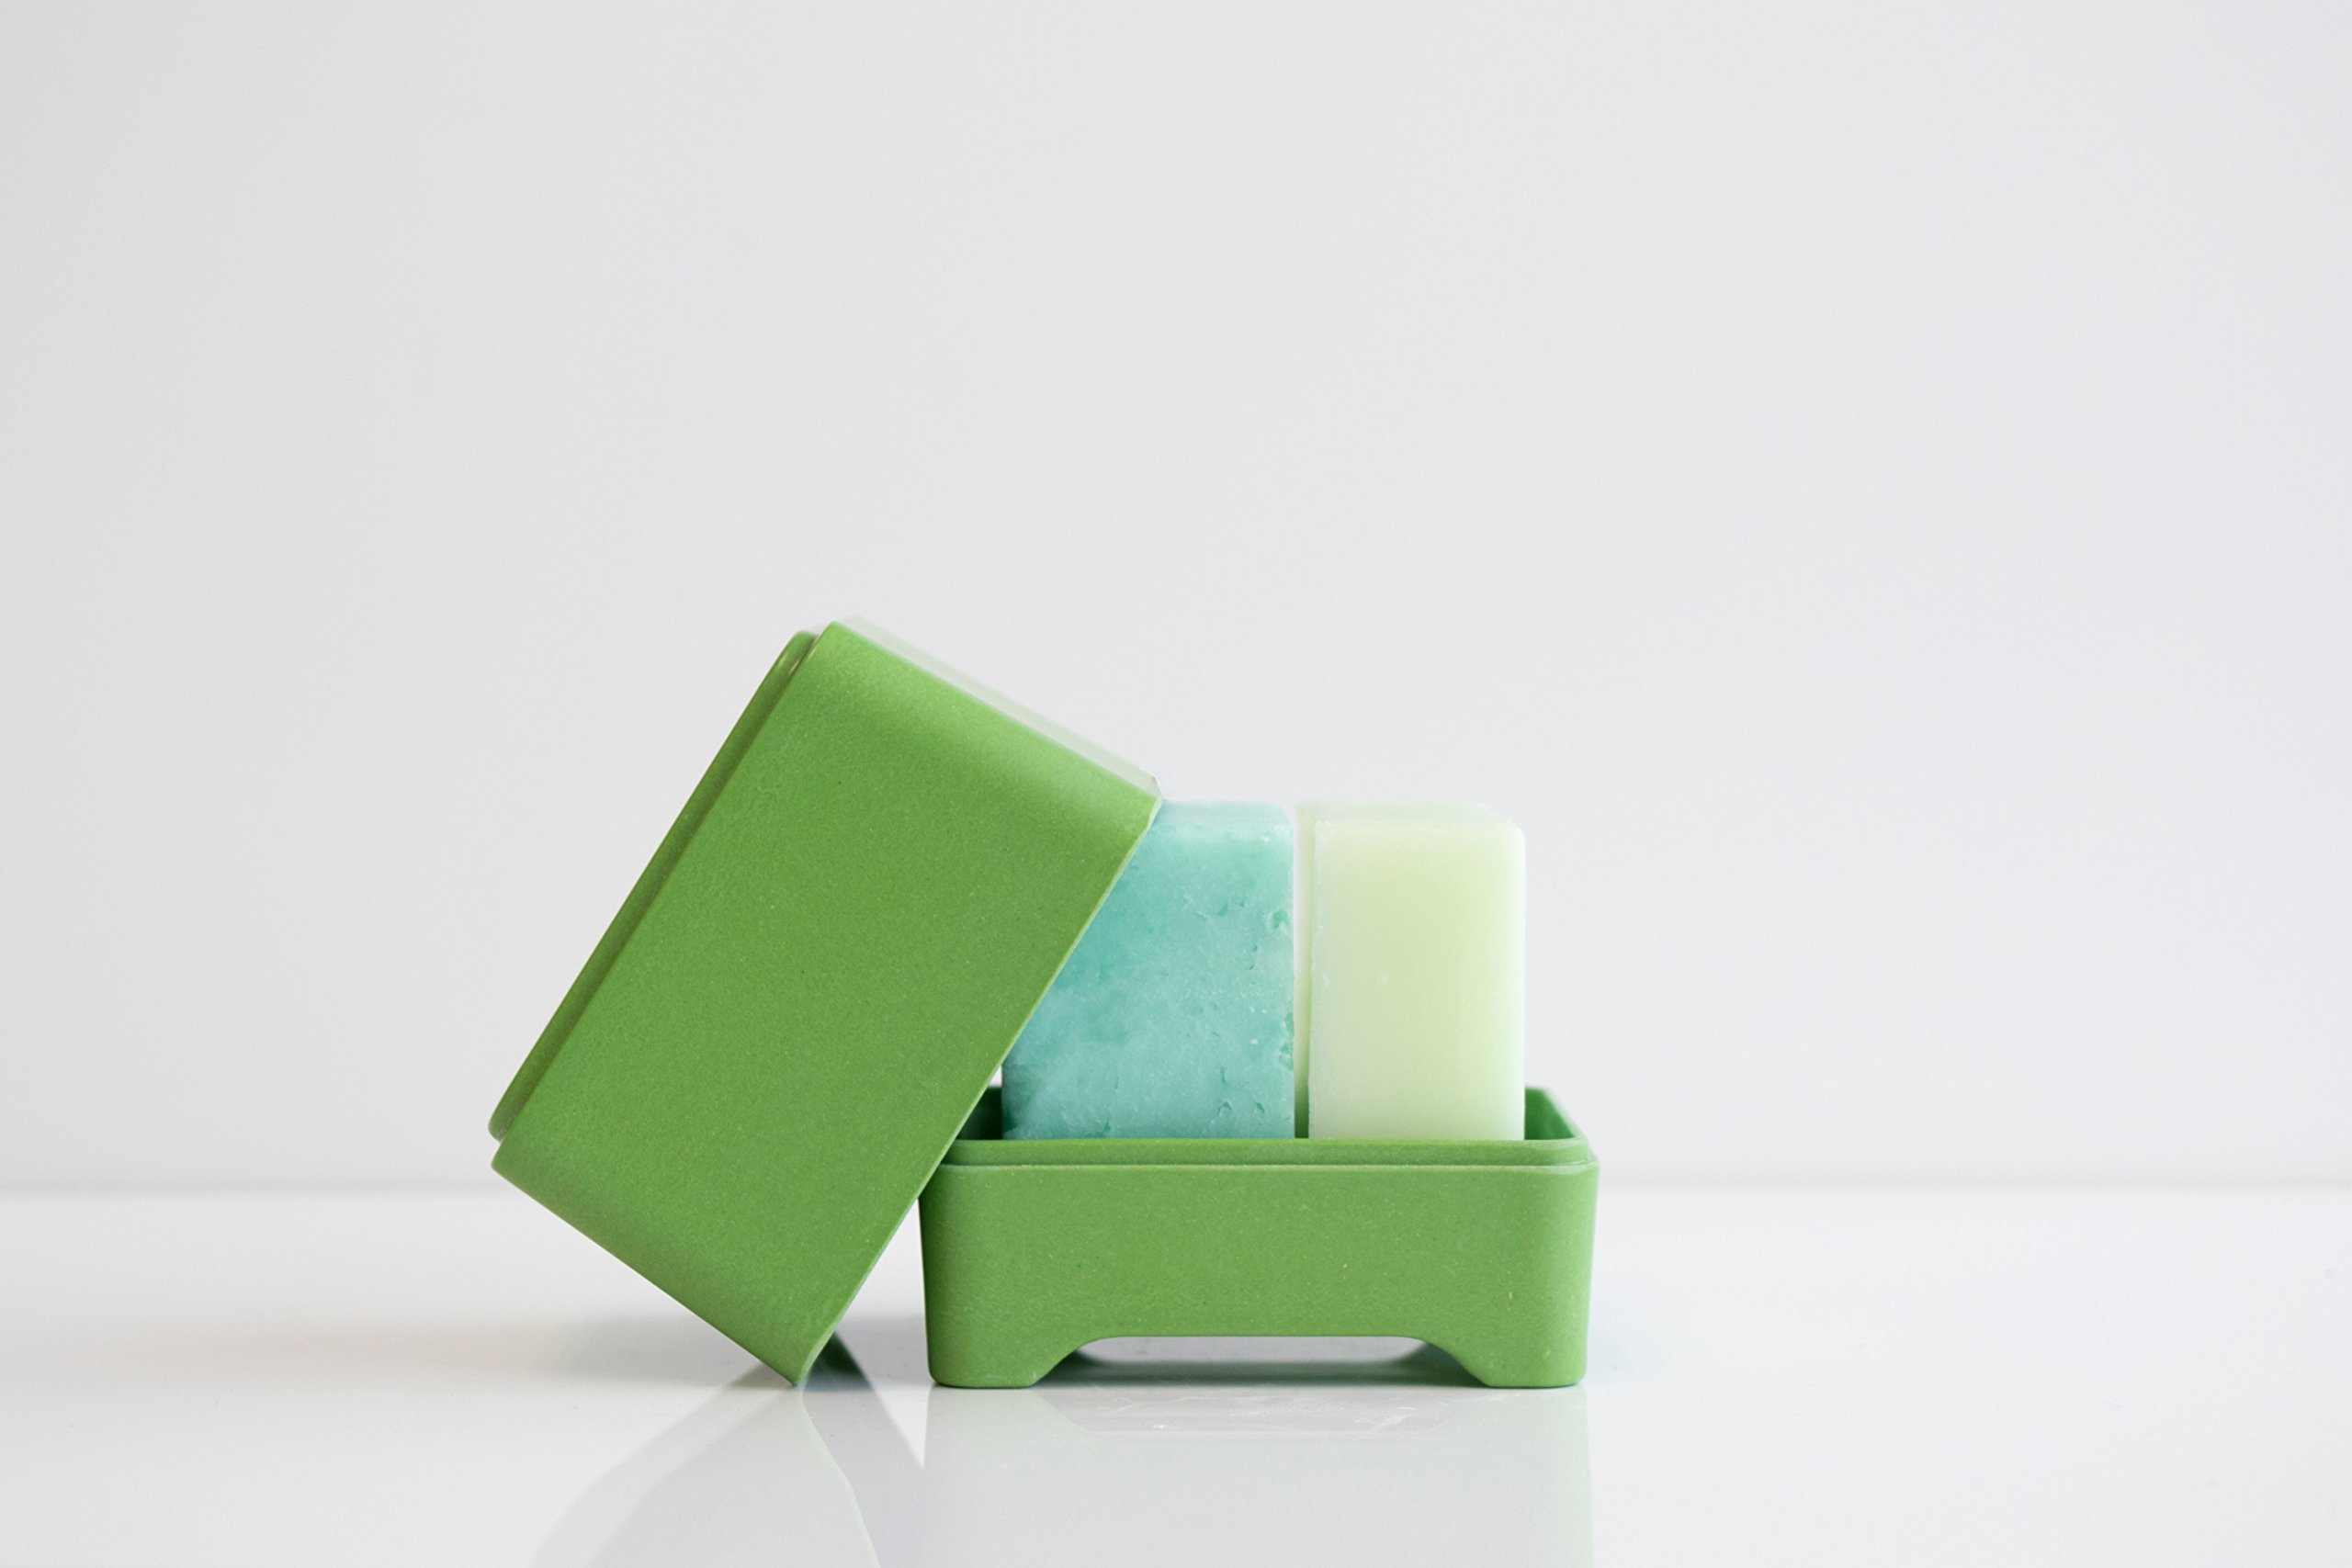 Ethique In Shower Container Green by Ethique (Image #2)